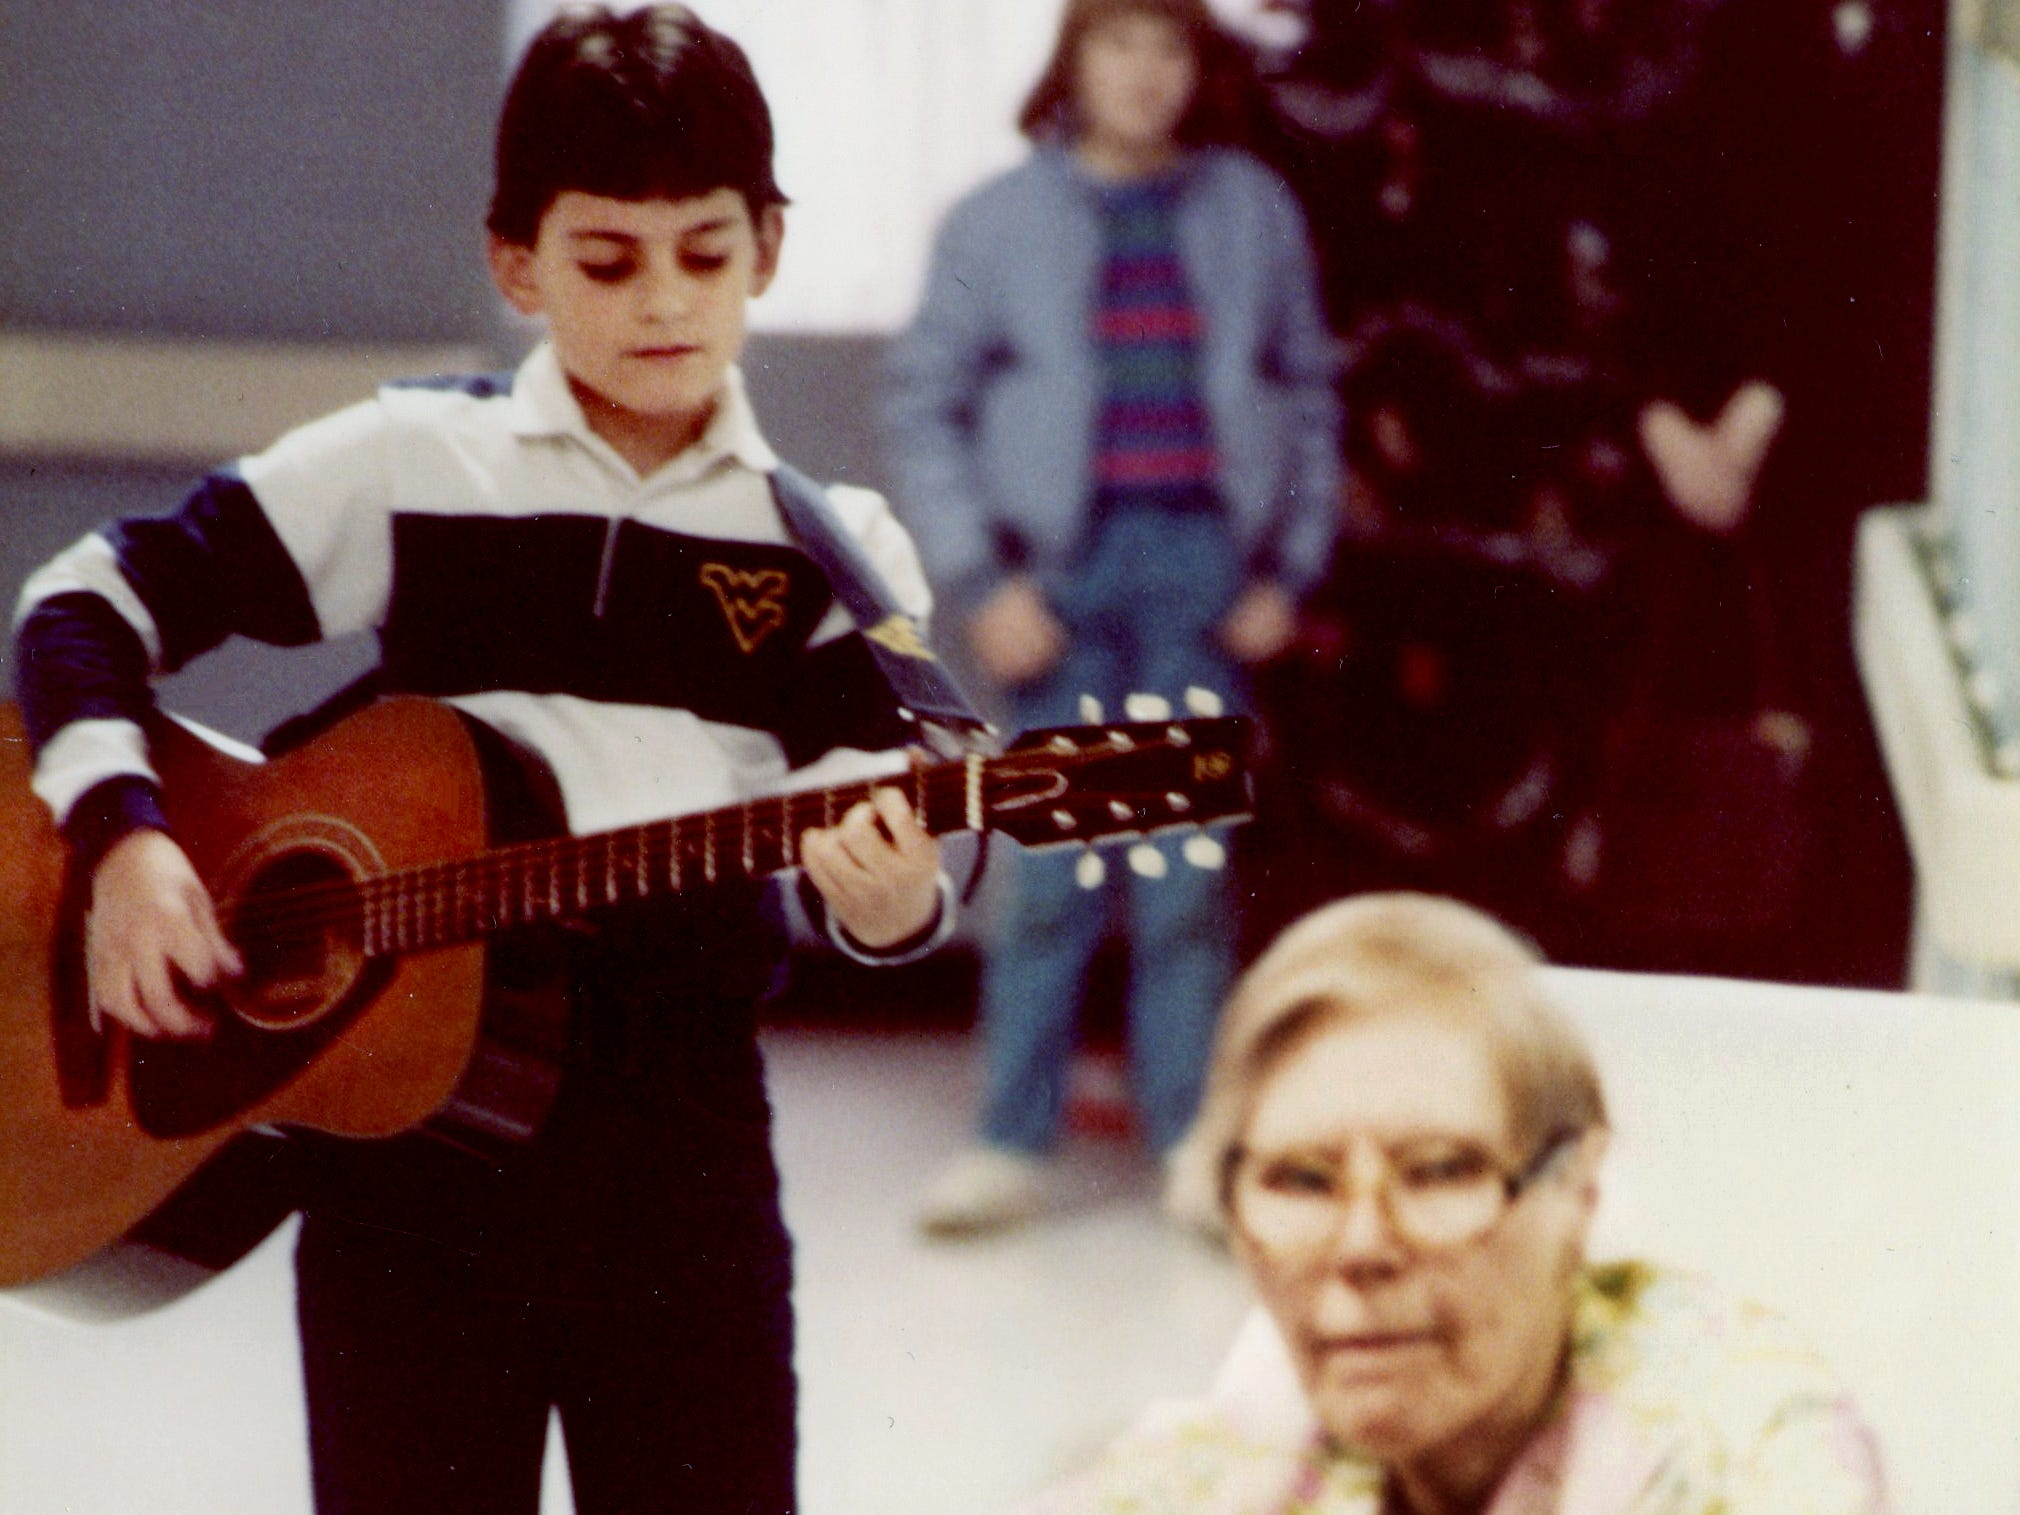 """Brad Paisley, 11, plays in a respite ward hallway at Reynolds Memorial Hospital in Glen Dale, W.Va. The patient in front of him was mostly nonverbal, yet she inexplicably sang along to every word when Paisley sang """"You Are My Sunshine"""" to her, an unlikely duet that had staff and Brad's mother, upper right, in tears."""